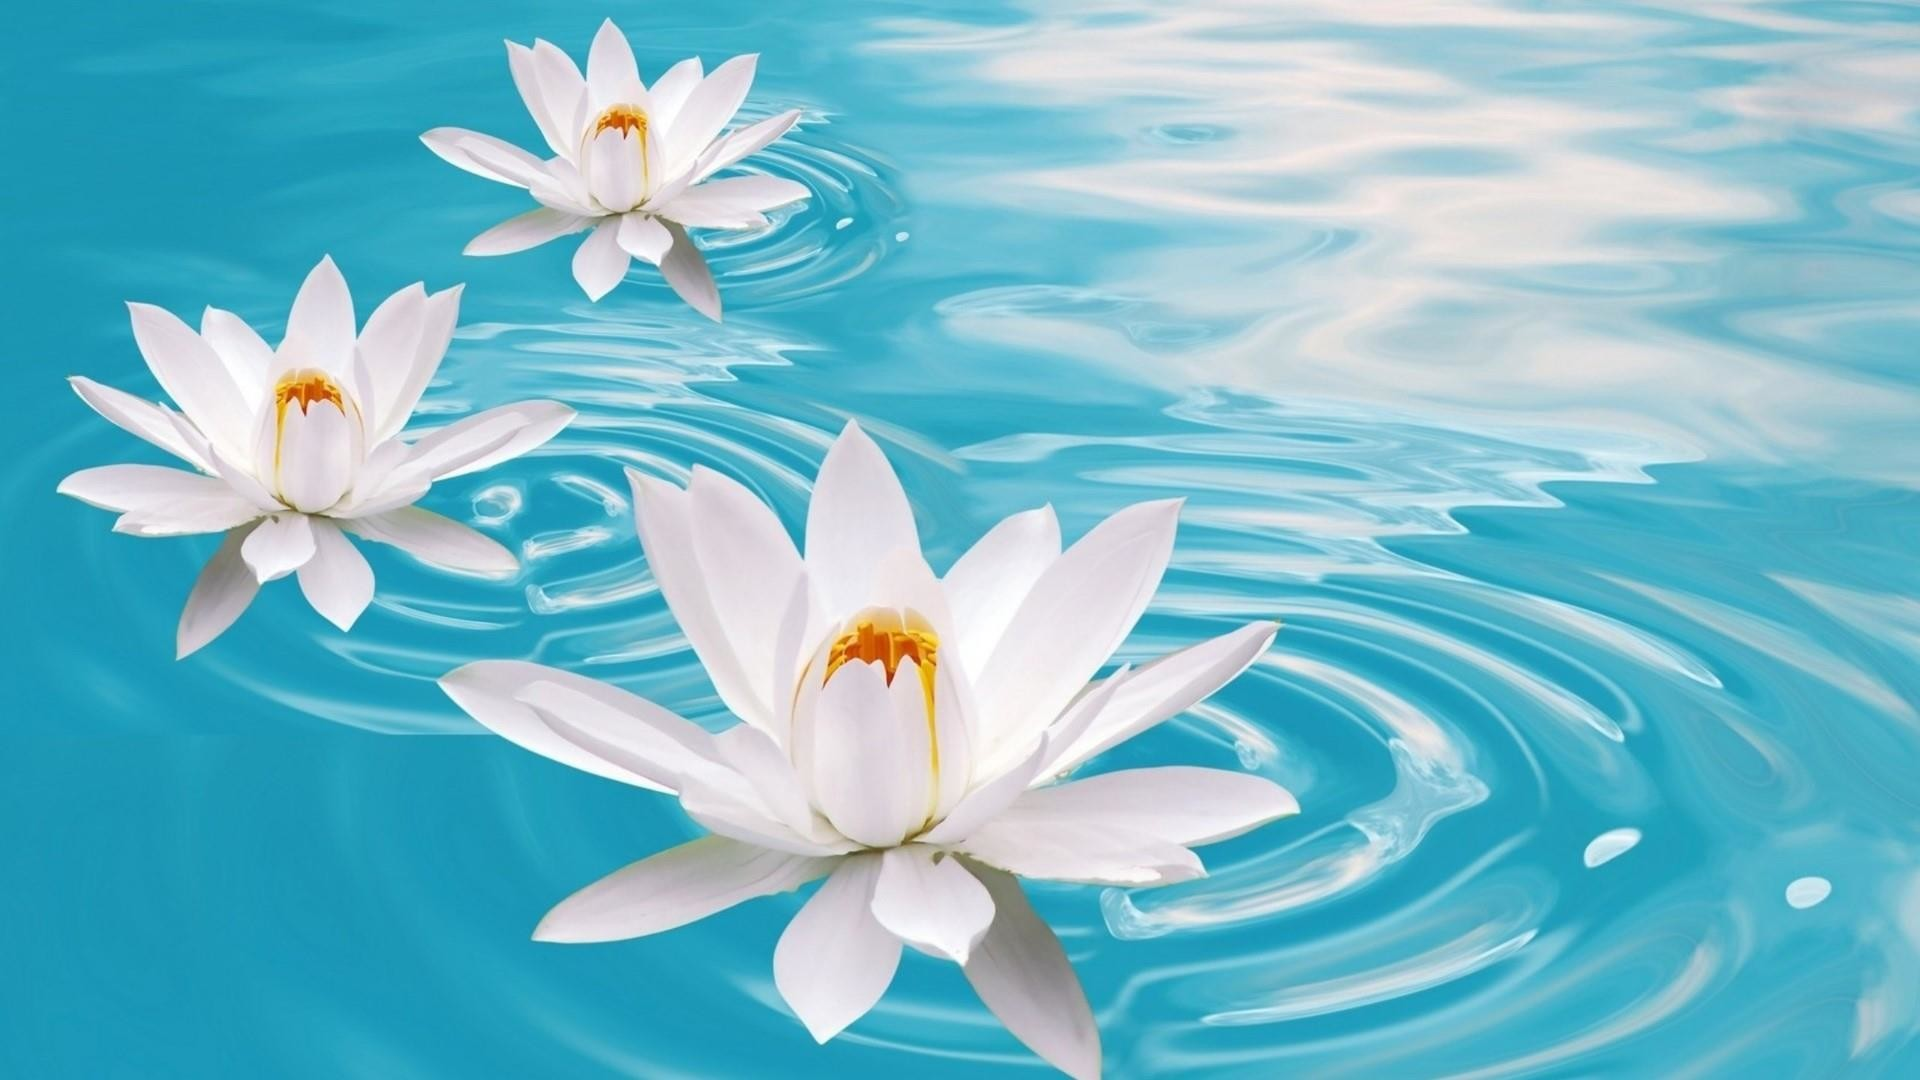 Water Lily Wallpaper 69 Pictures